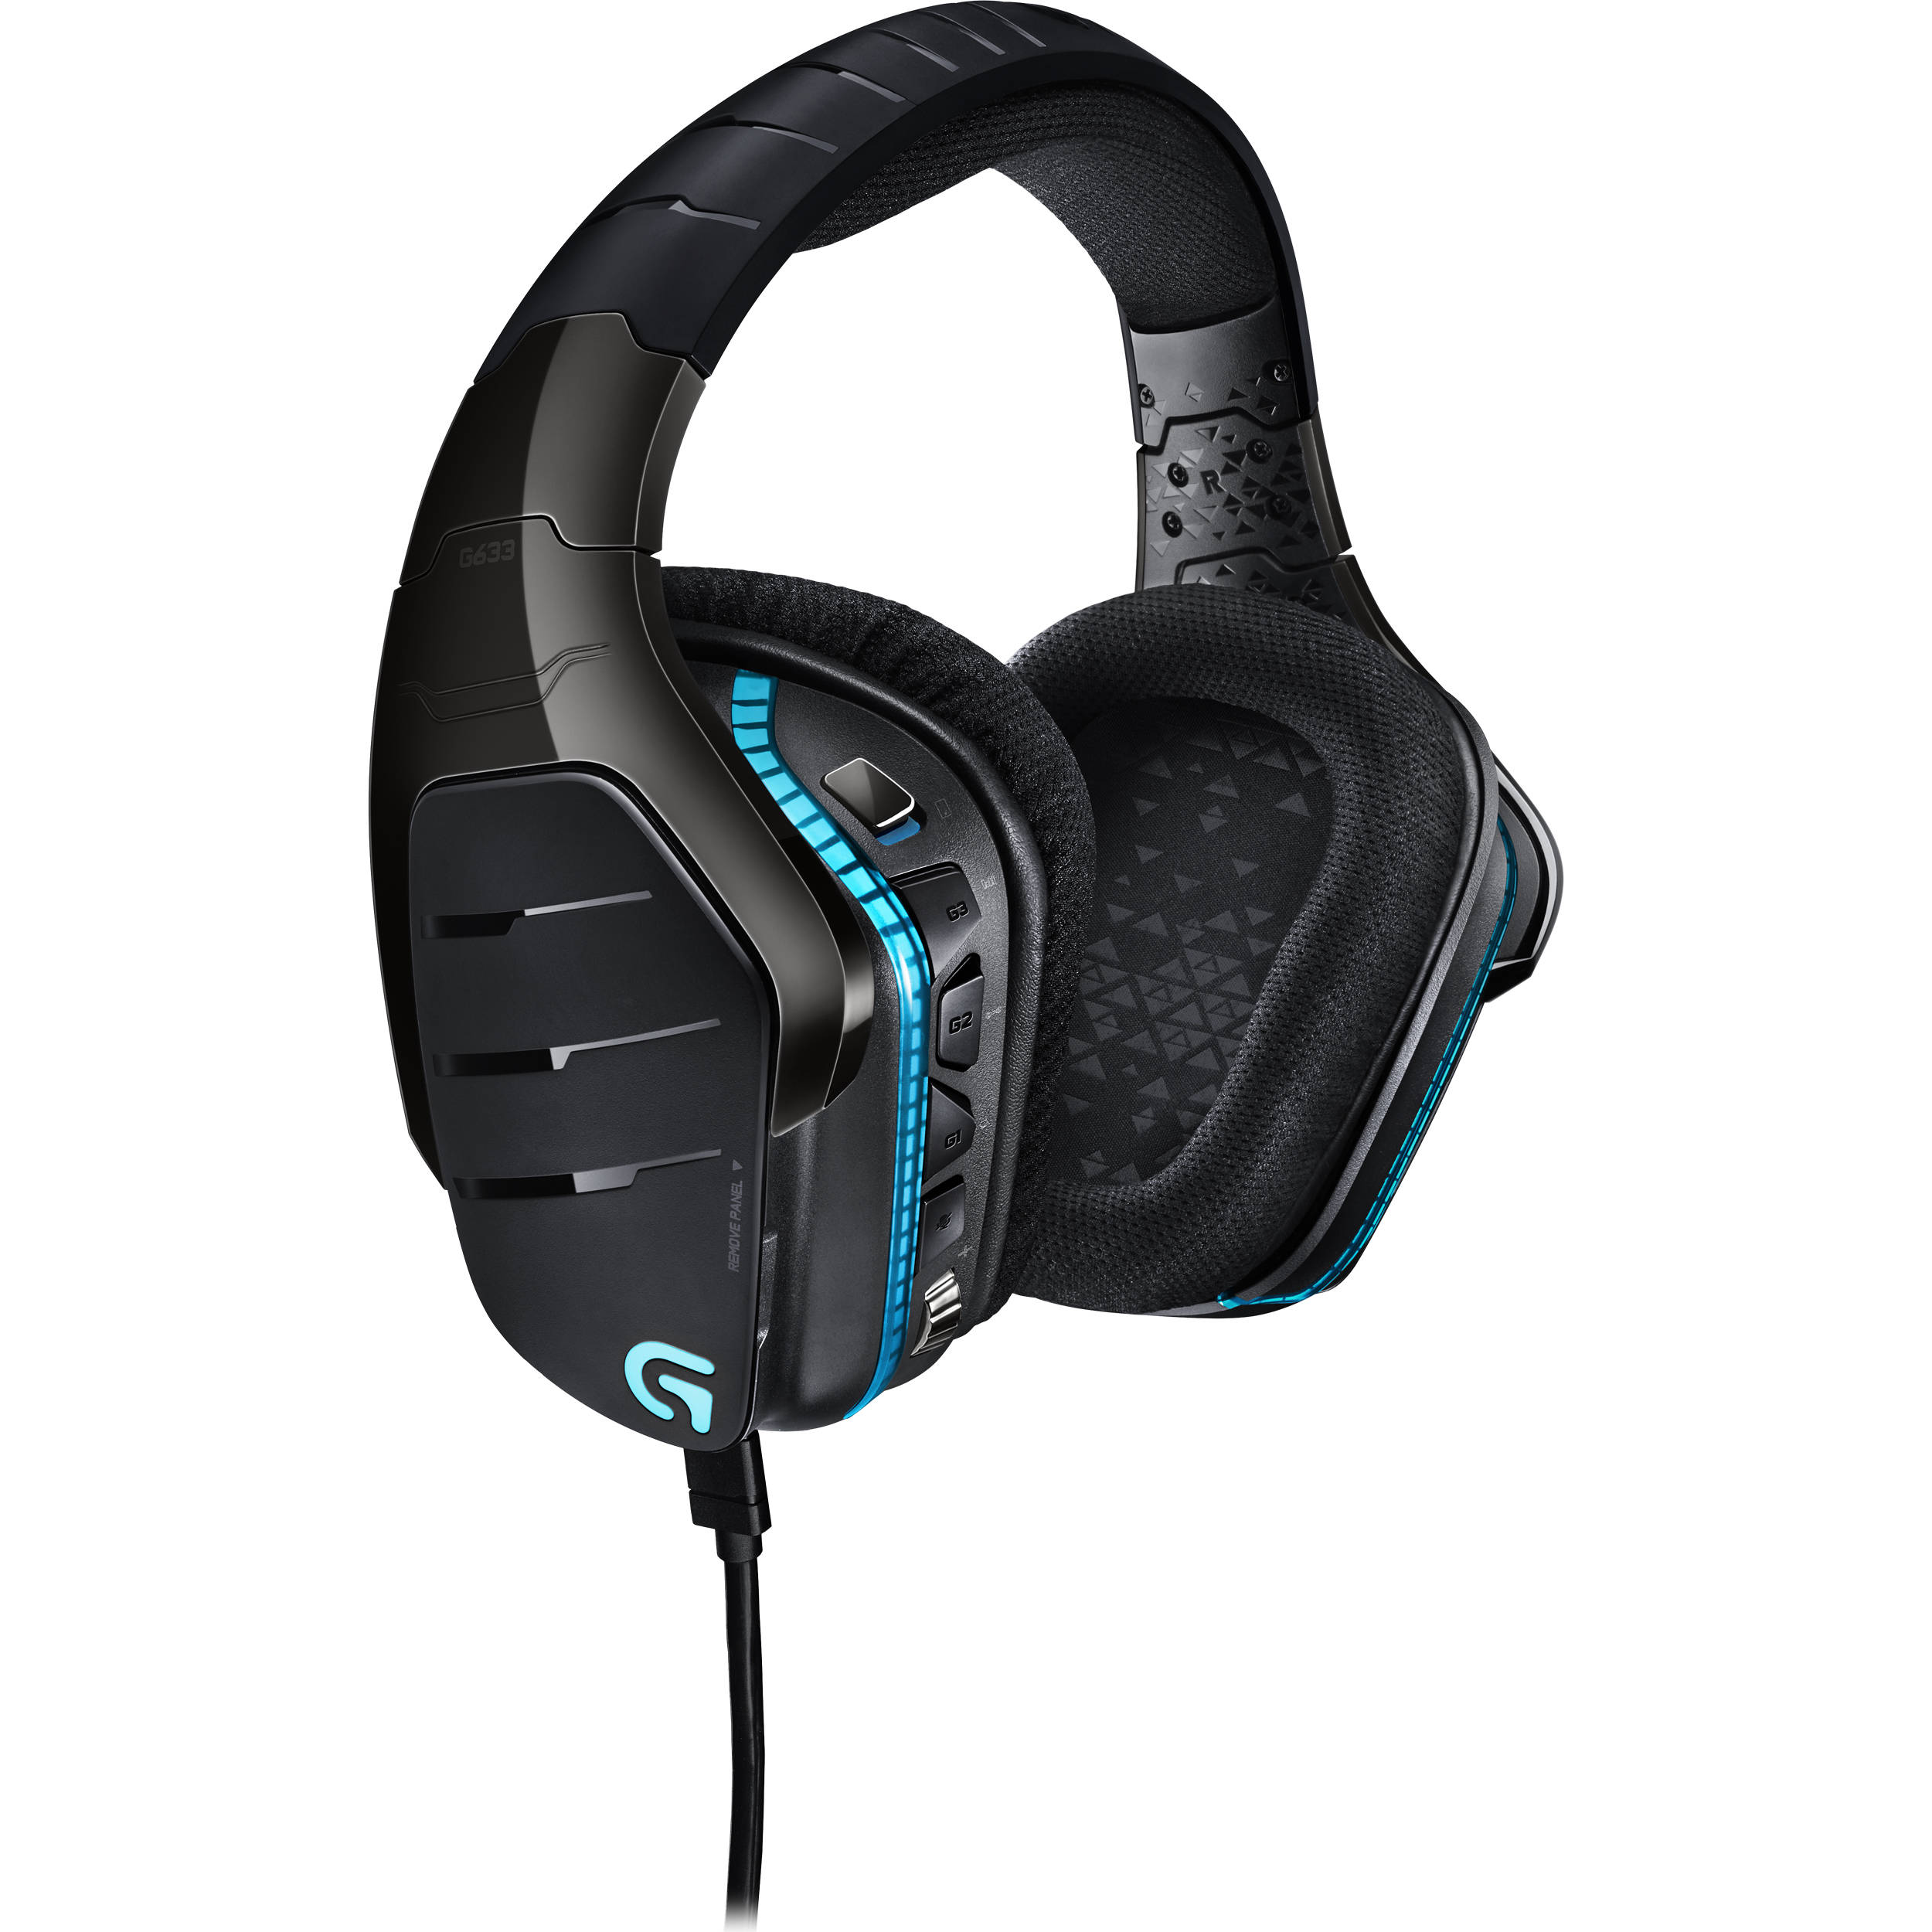 Logitech G633 Artemis Spectrum – RGB 7 1 Dolby and DTS Headphone Surround  Sound Gaming Headset – PC, PS4, Xbox One, Switch, and Mobile Compatible